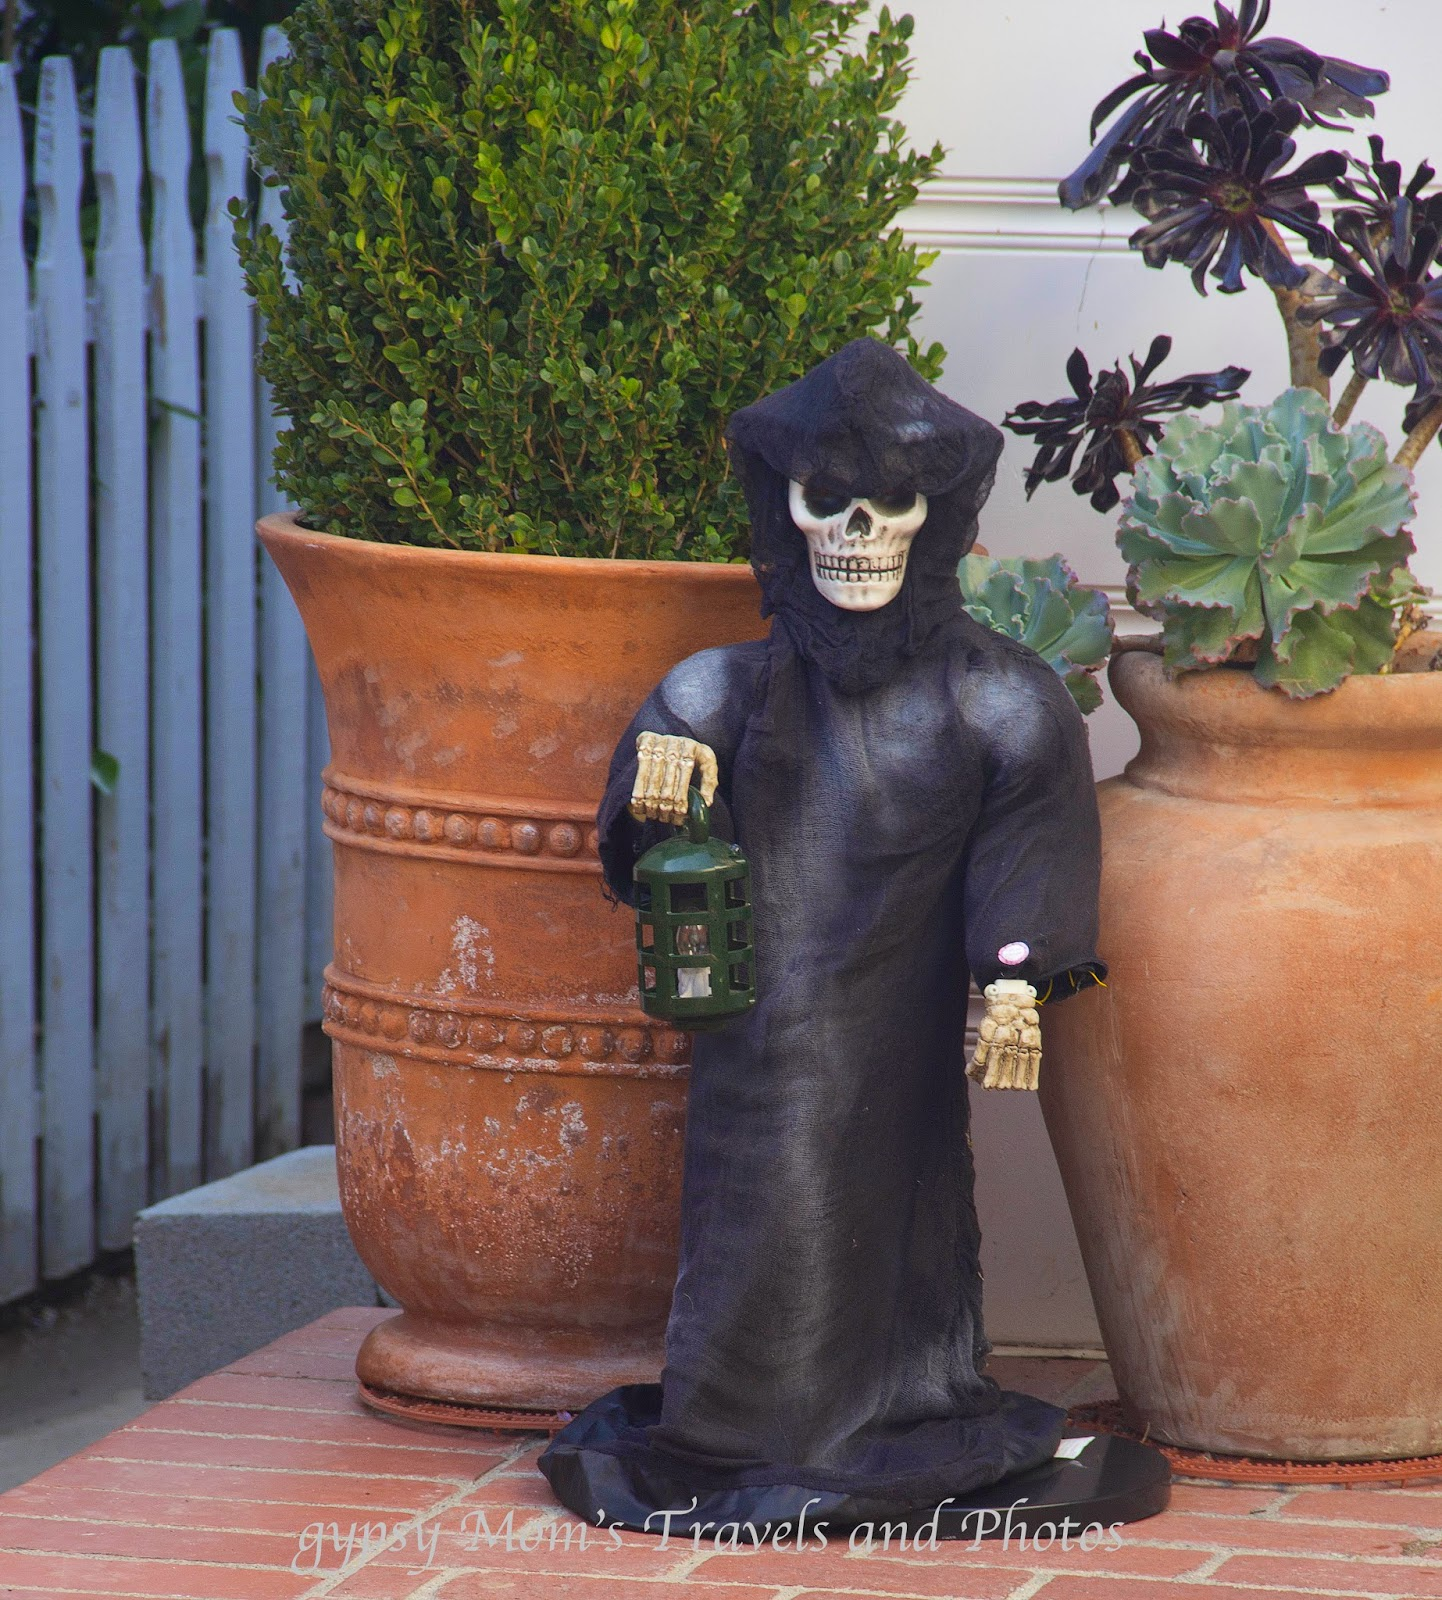 Protector of the plants in front of a house in Corona de Mar